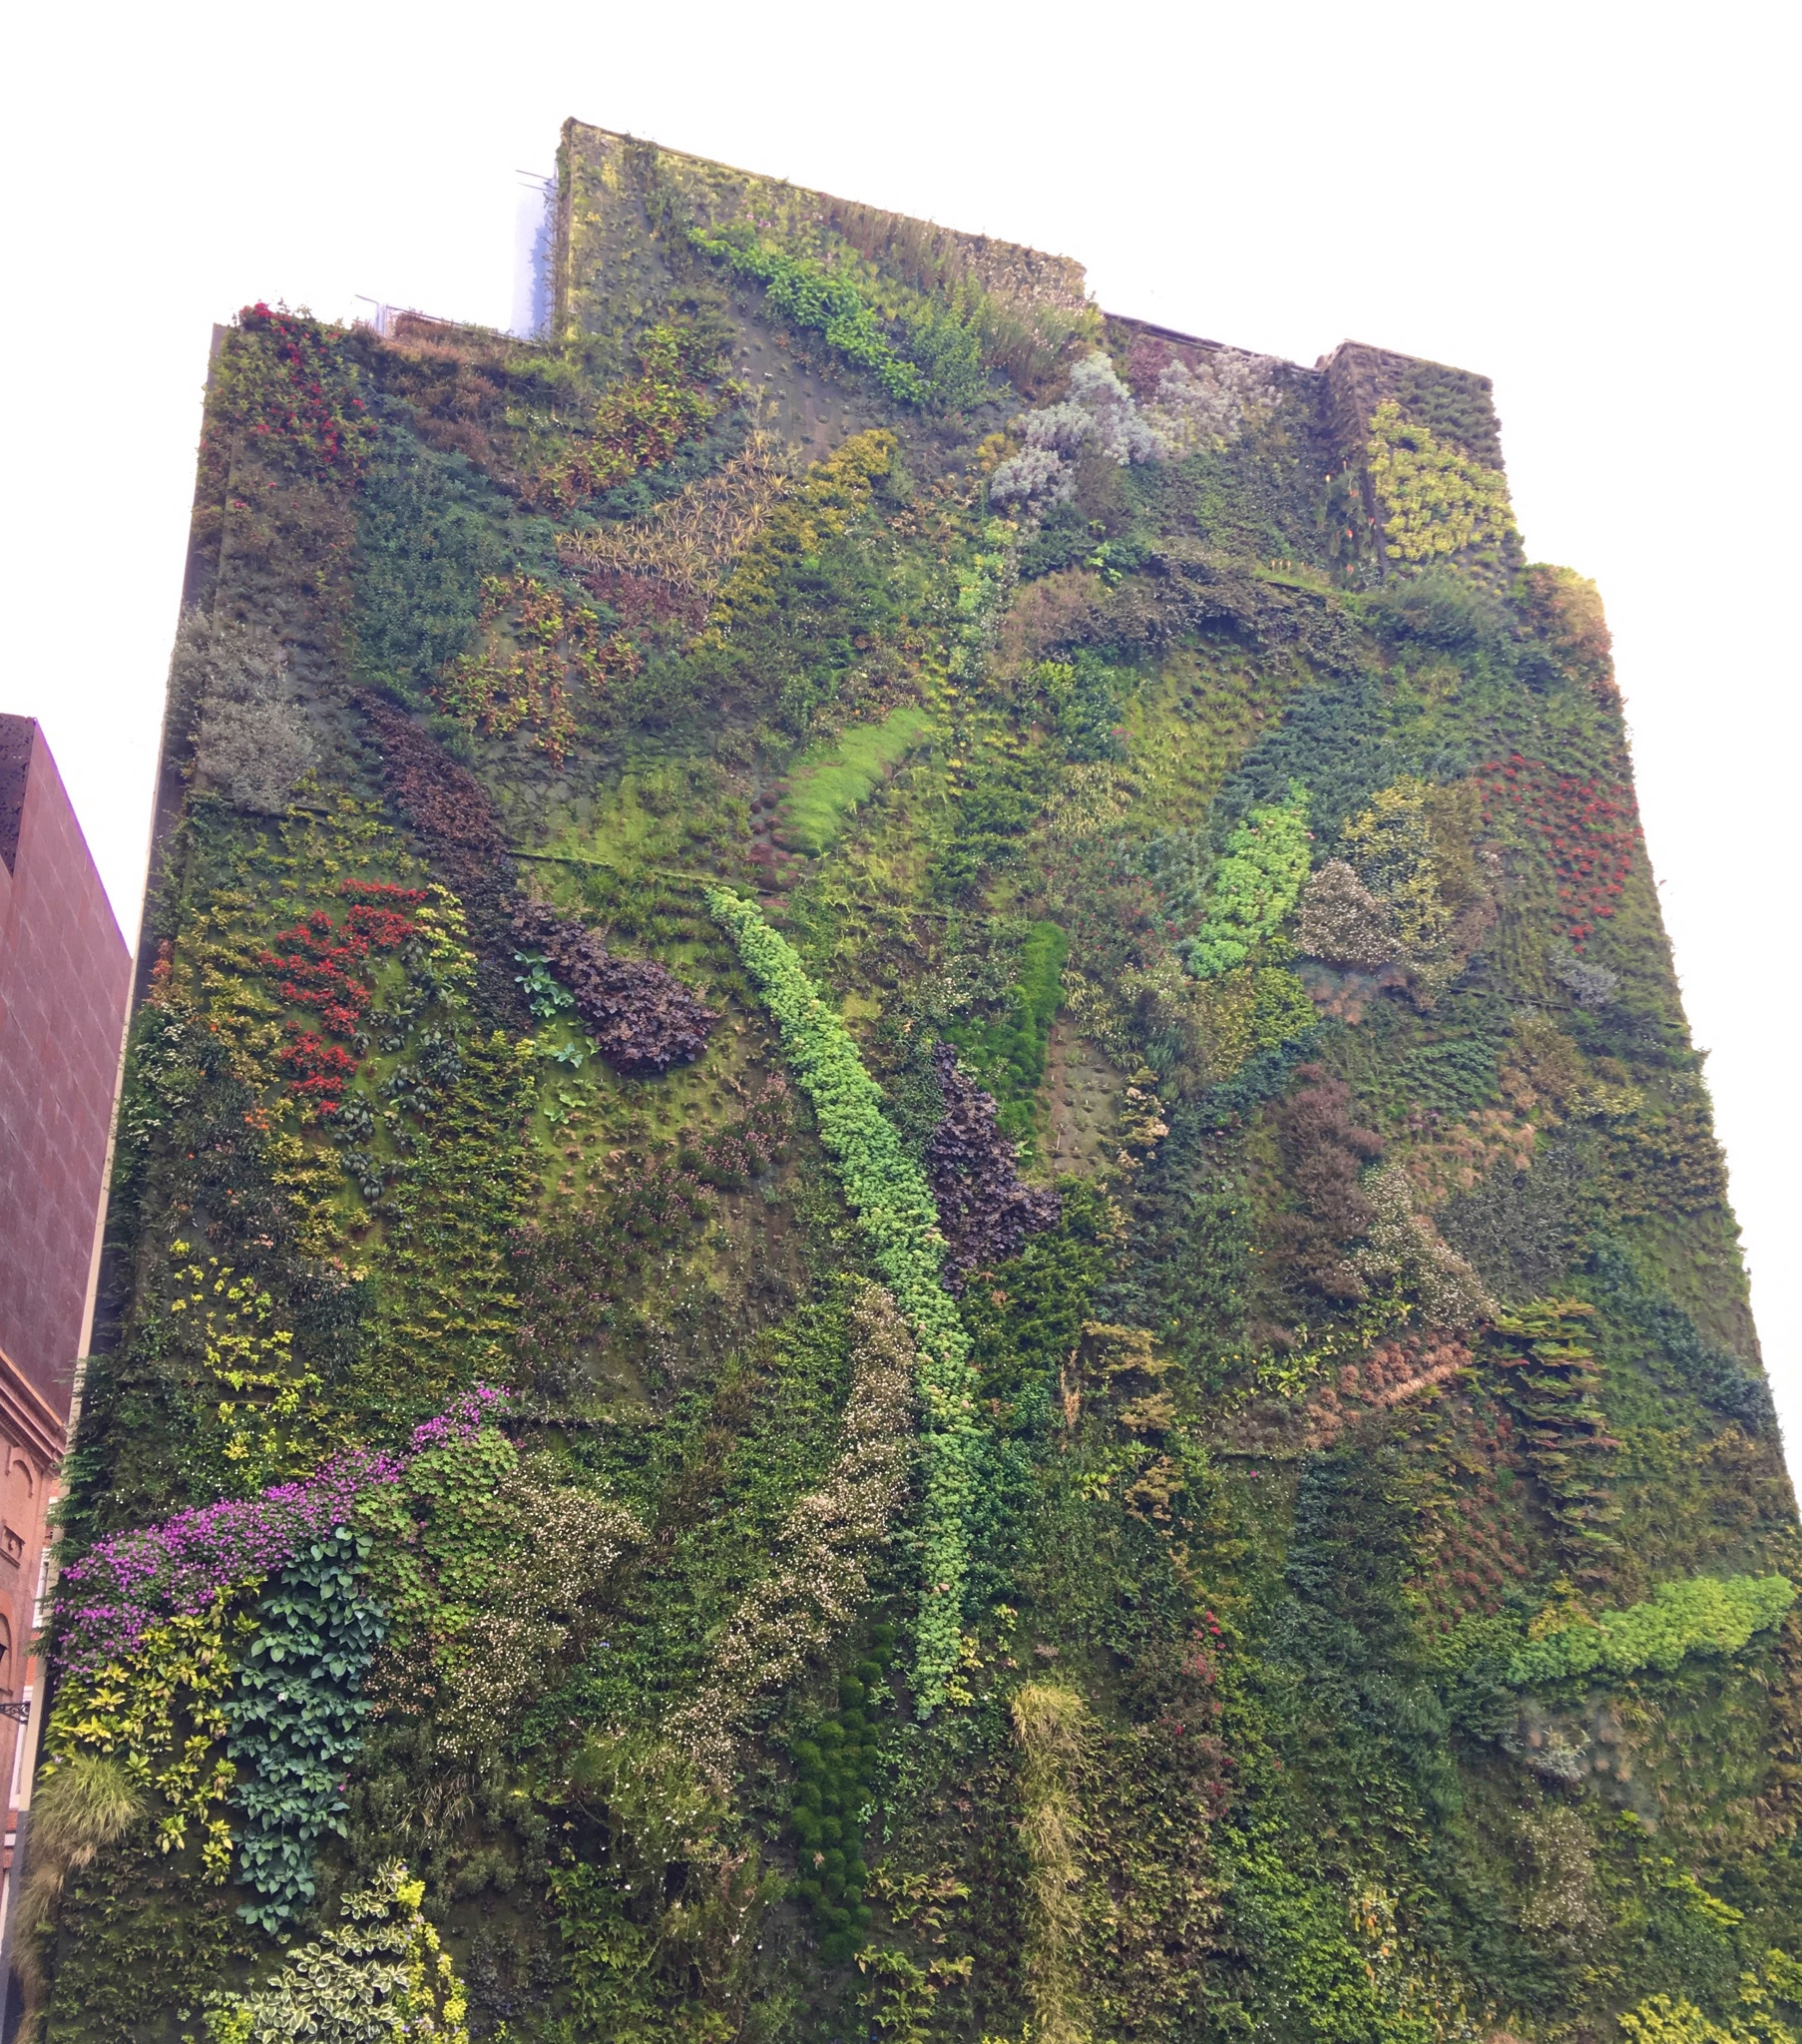 Plant wall near Atocha